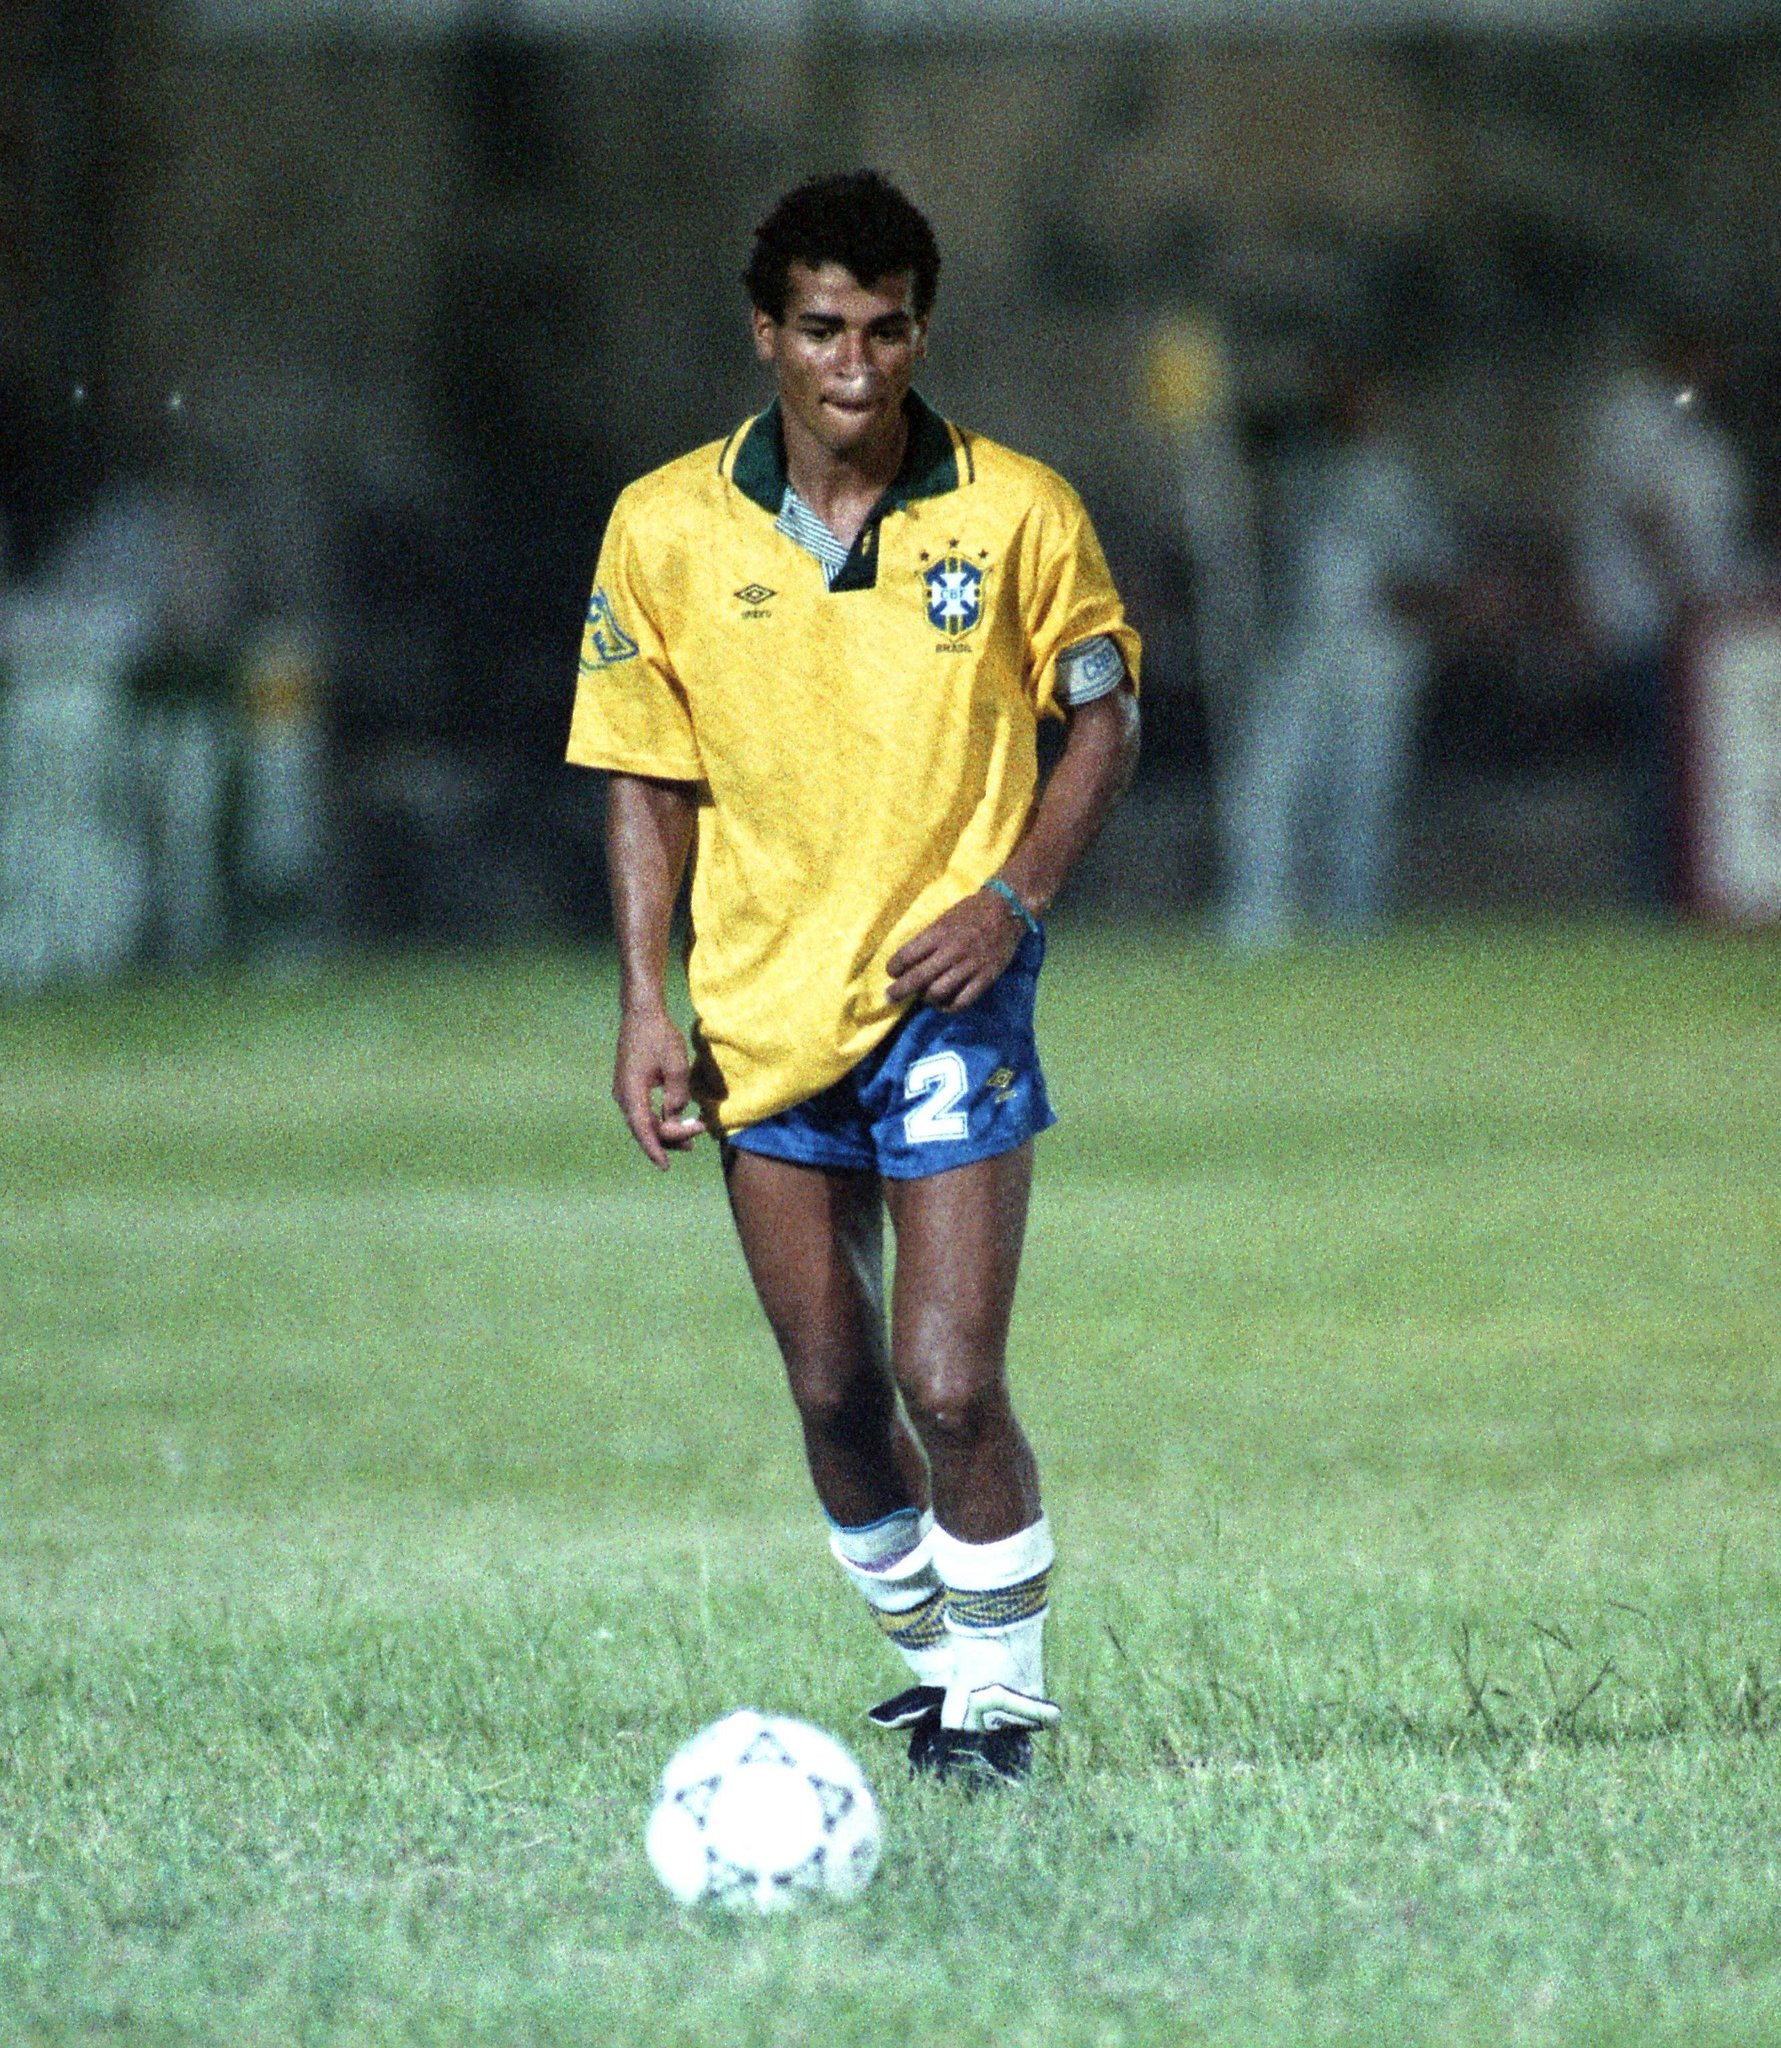 FIFA World Cup: #OnThisDay in 1990, @CBF_Futebol gave a young right-back his international debut 👶�...